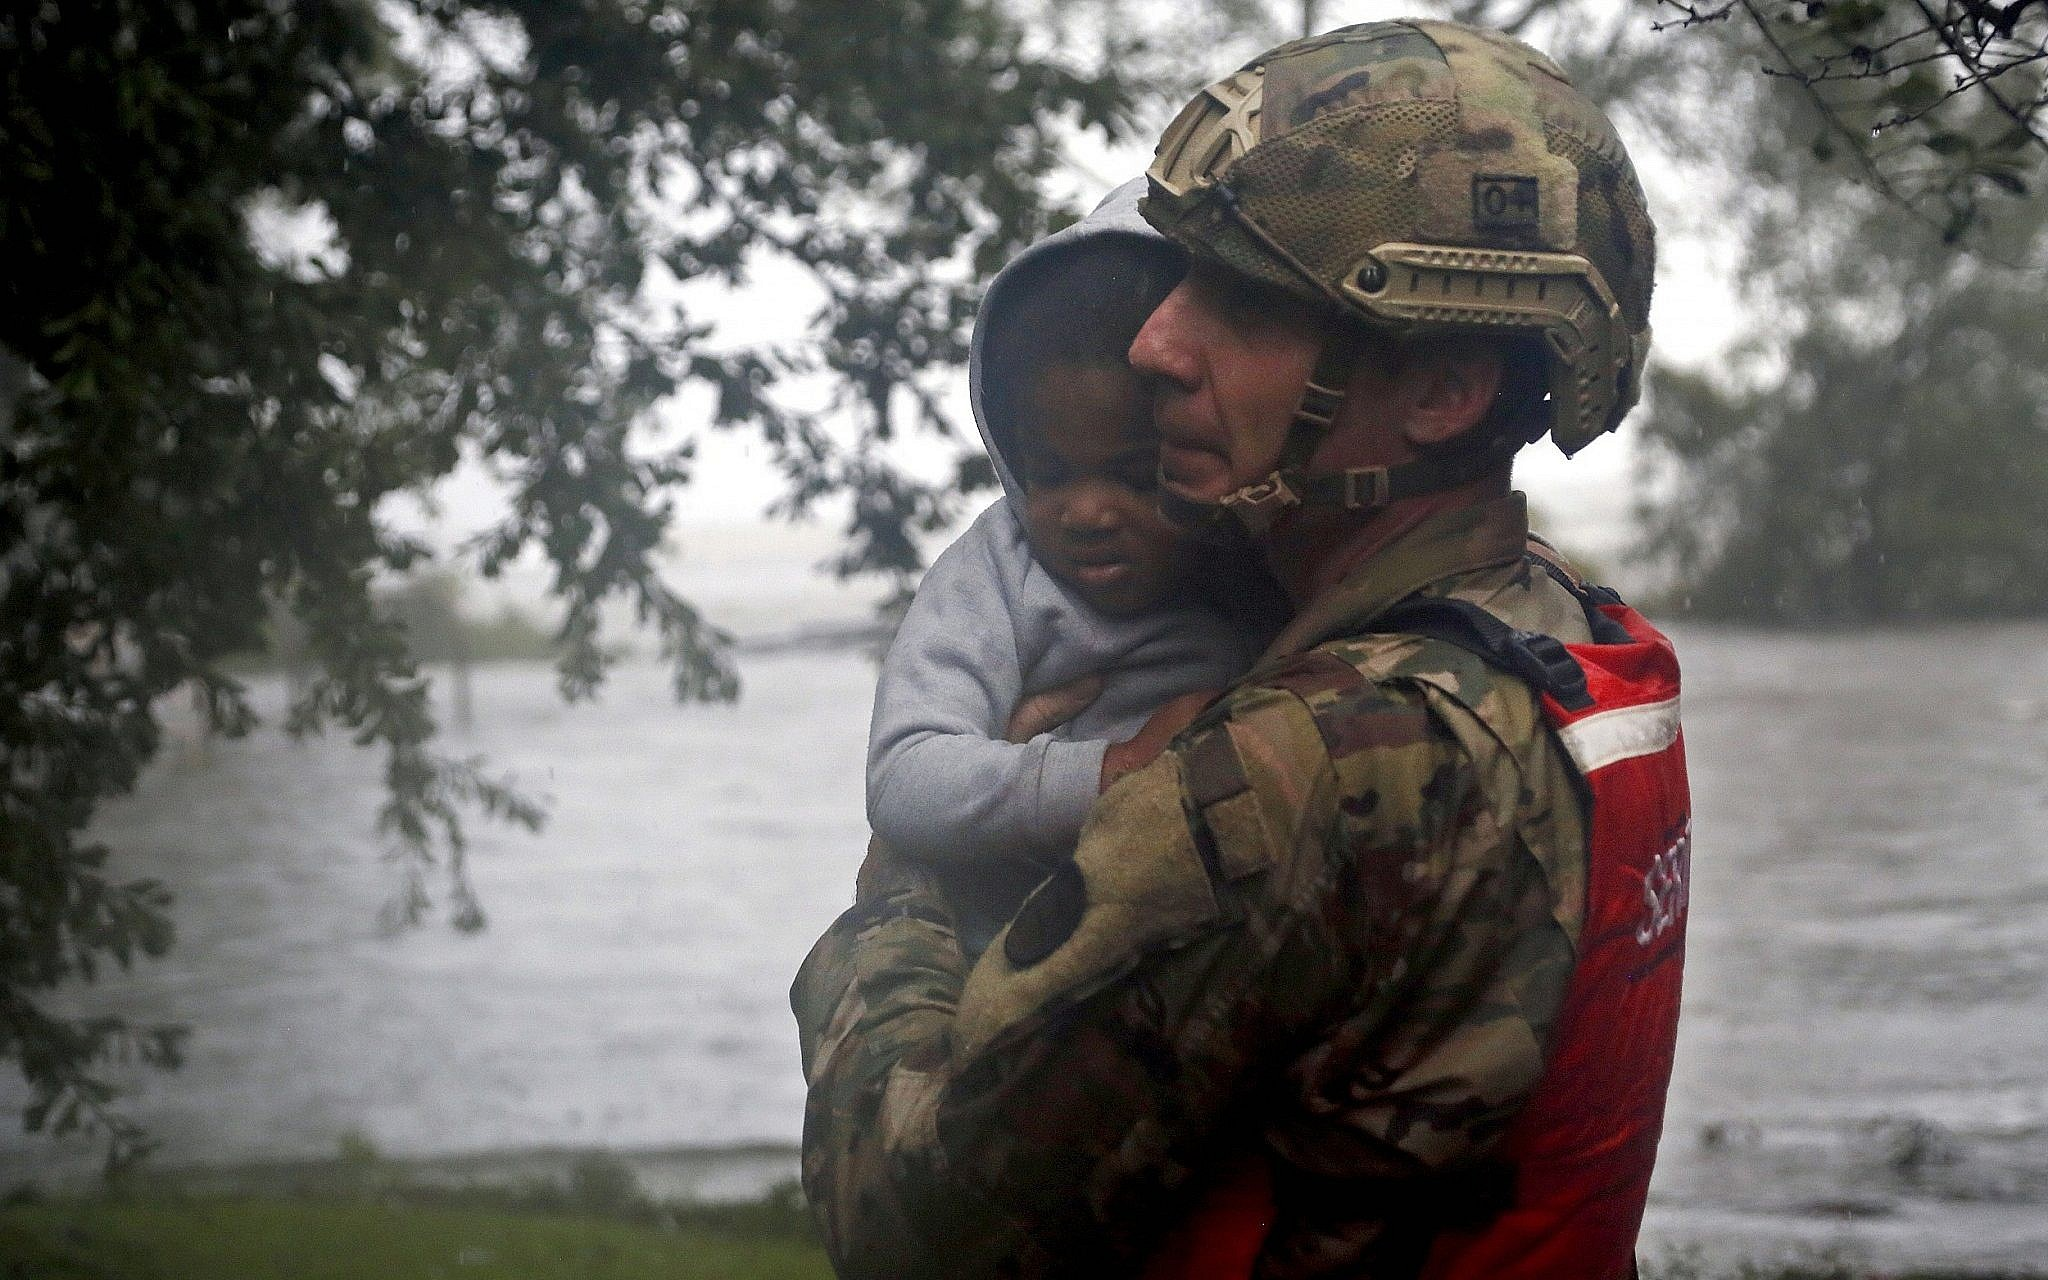 Death toll rise to 13, Florence continues to wreak havoc in US